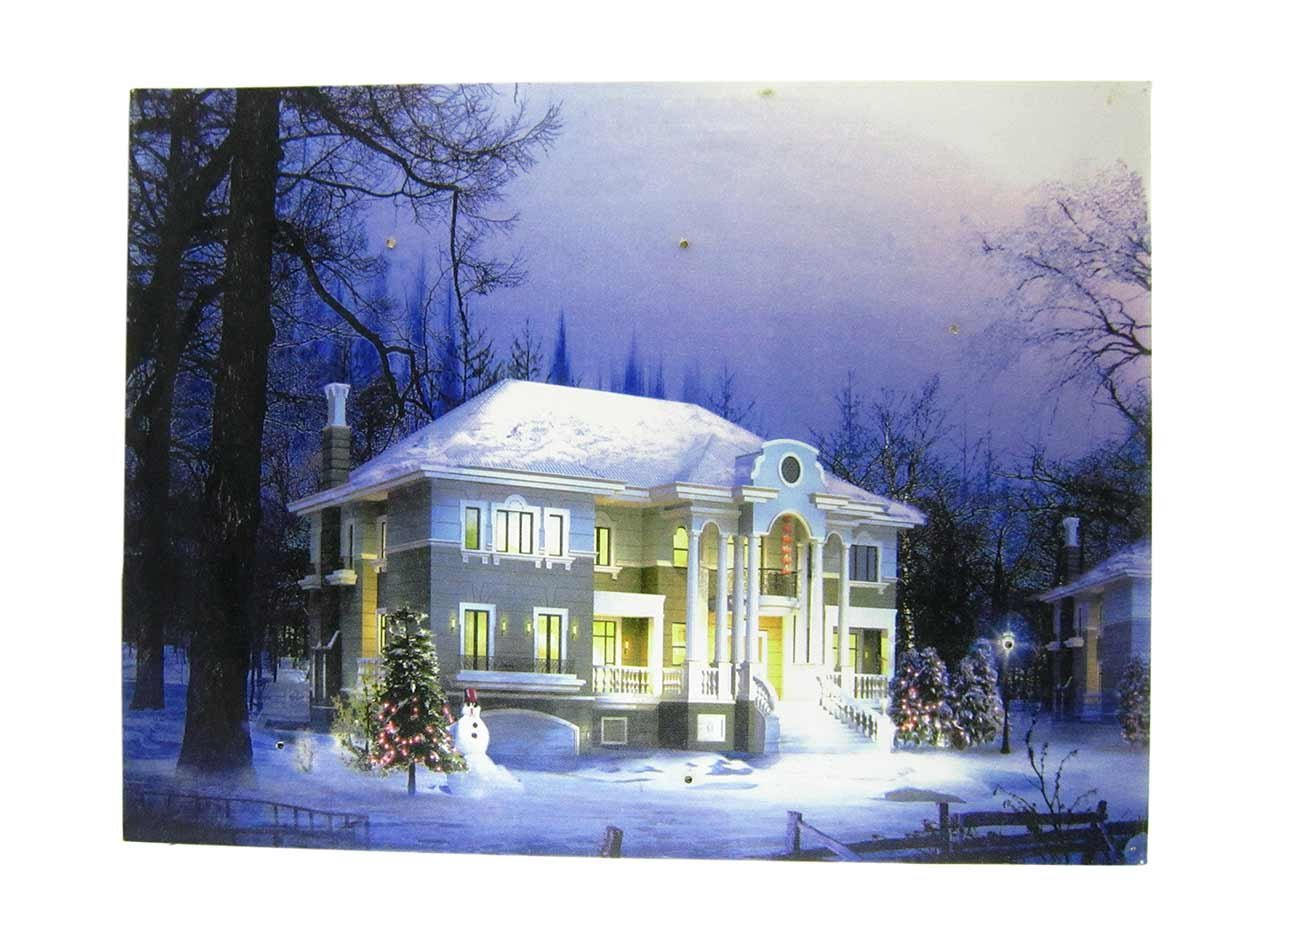 Sunnyhill Wall Decoration Door Cover LED Christmas Light Mural-Wooden Back